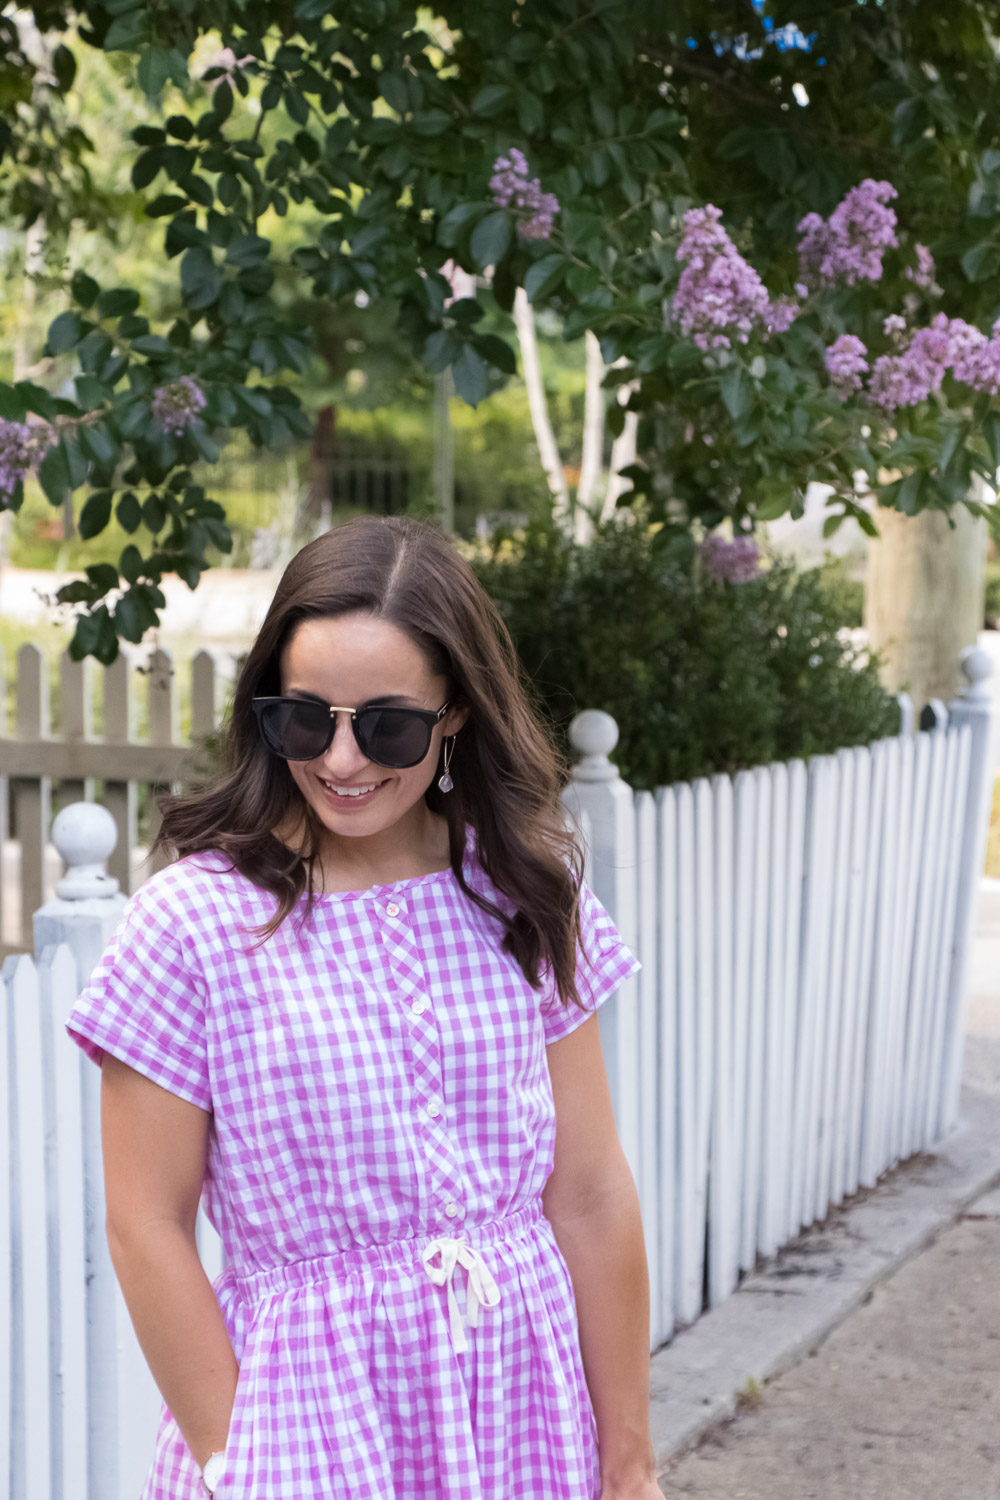 Pumps and Push-Ups: Gingham shirtdress for summer